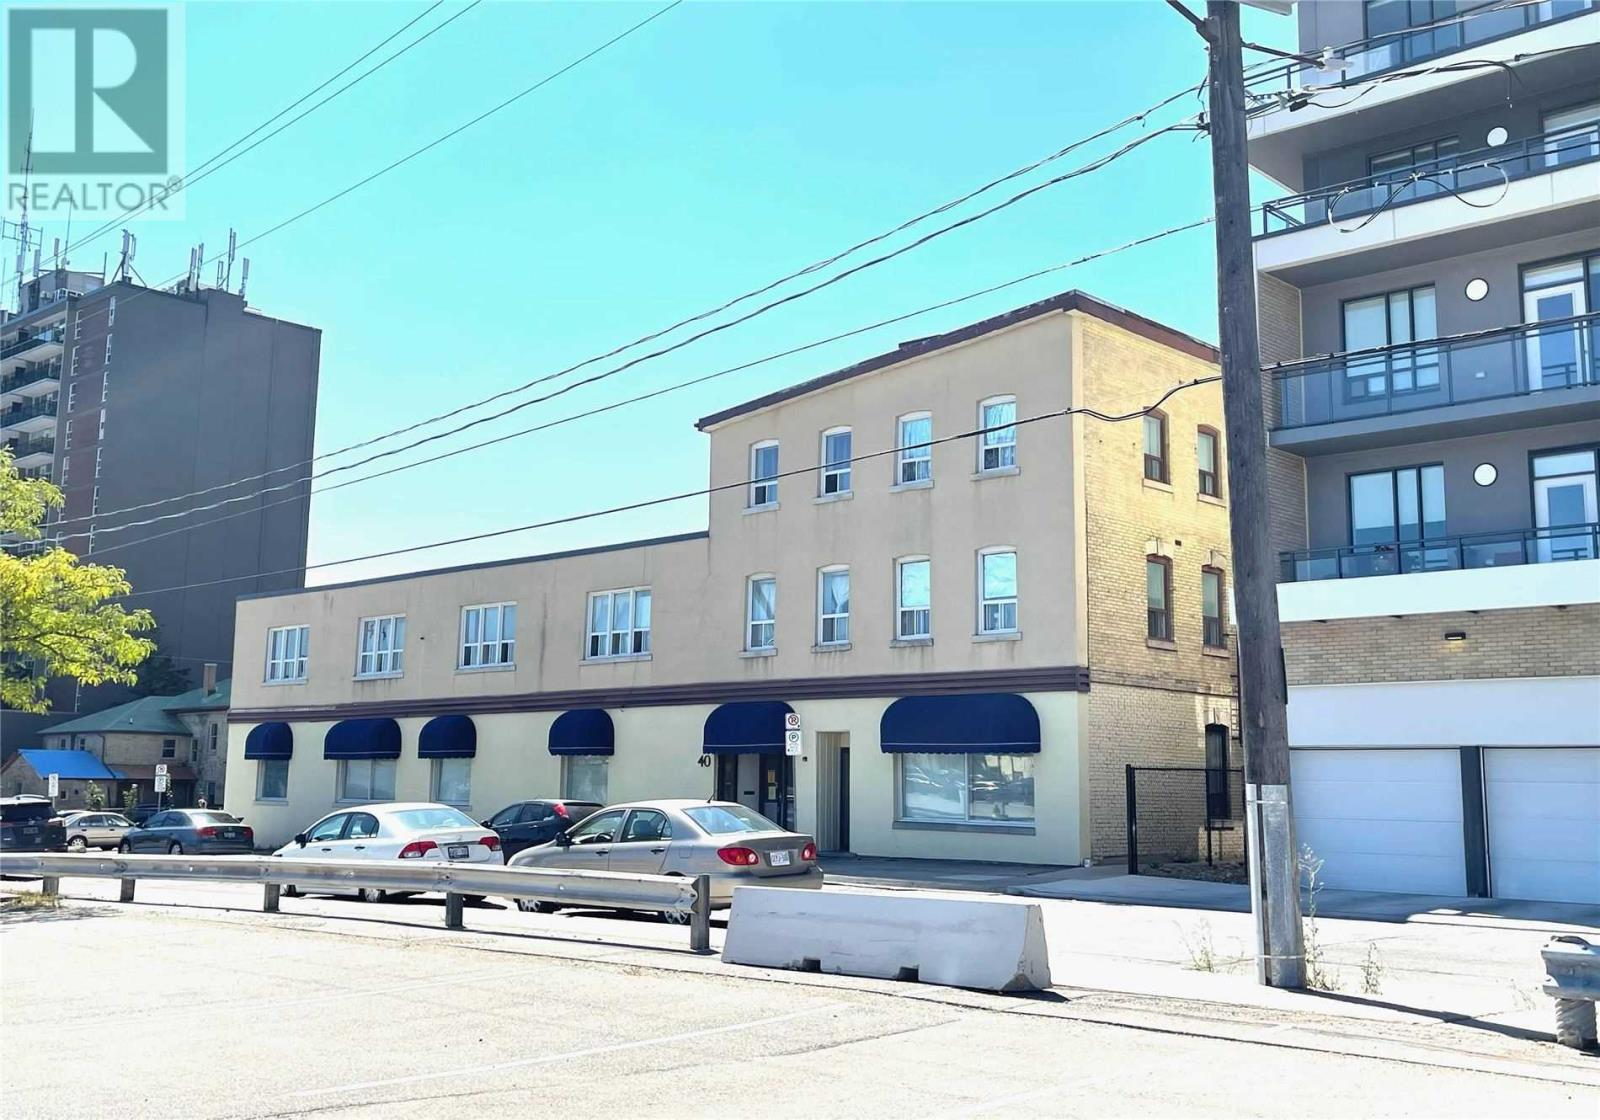 residential property for For lease at Guelph, Ontario